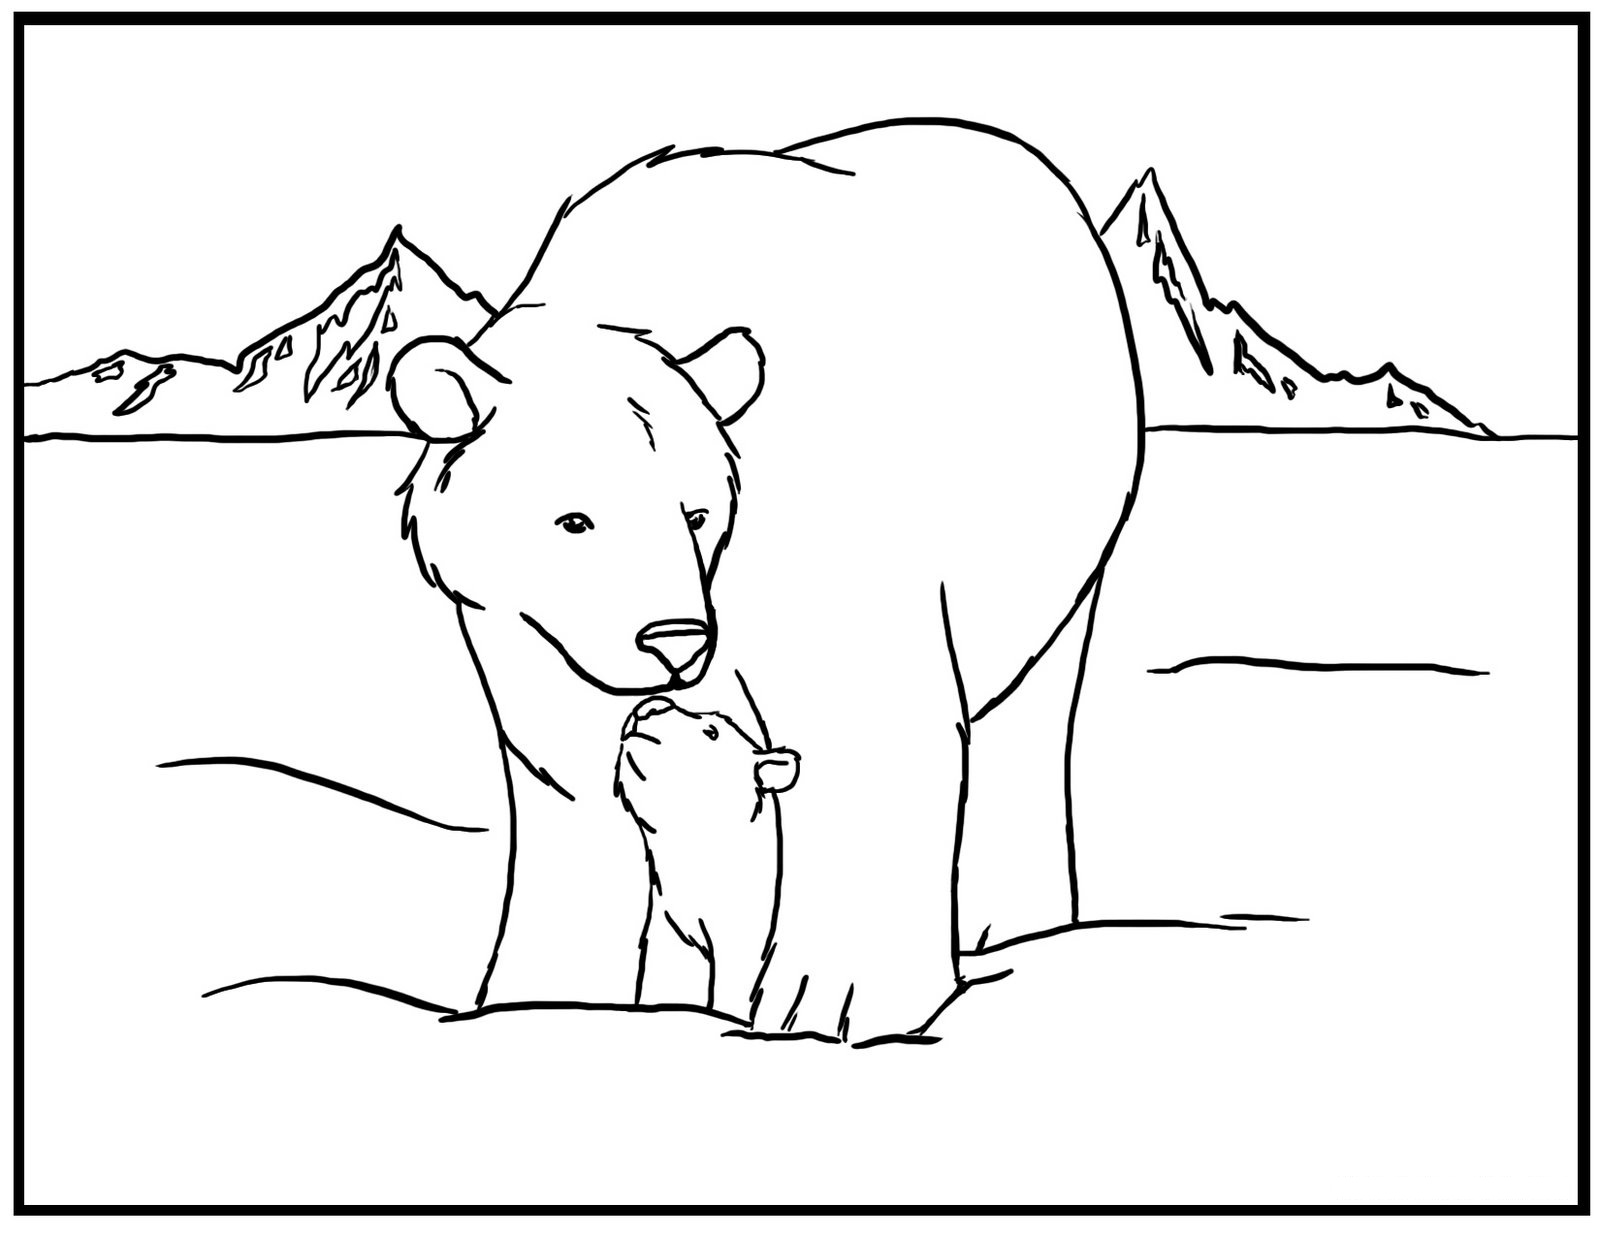 Polar animals coloring pages for kids - Polar Bear Coloring Pages Free